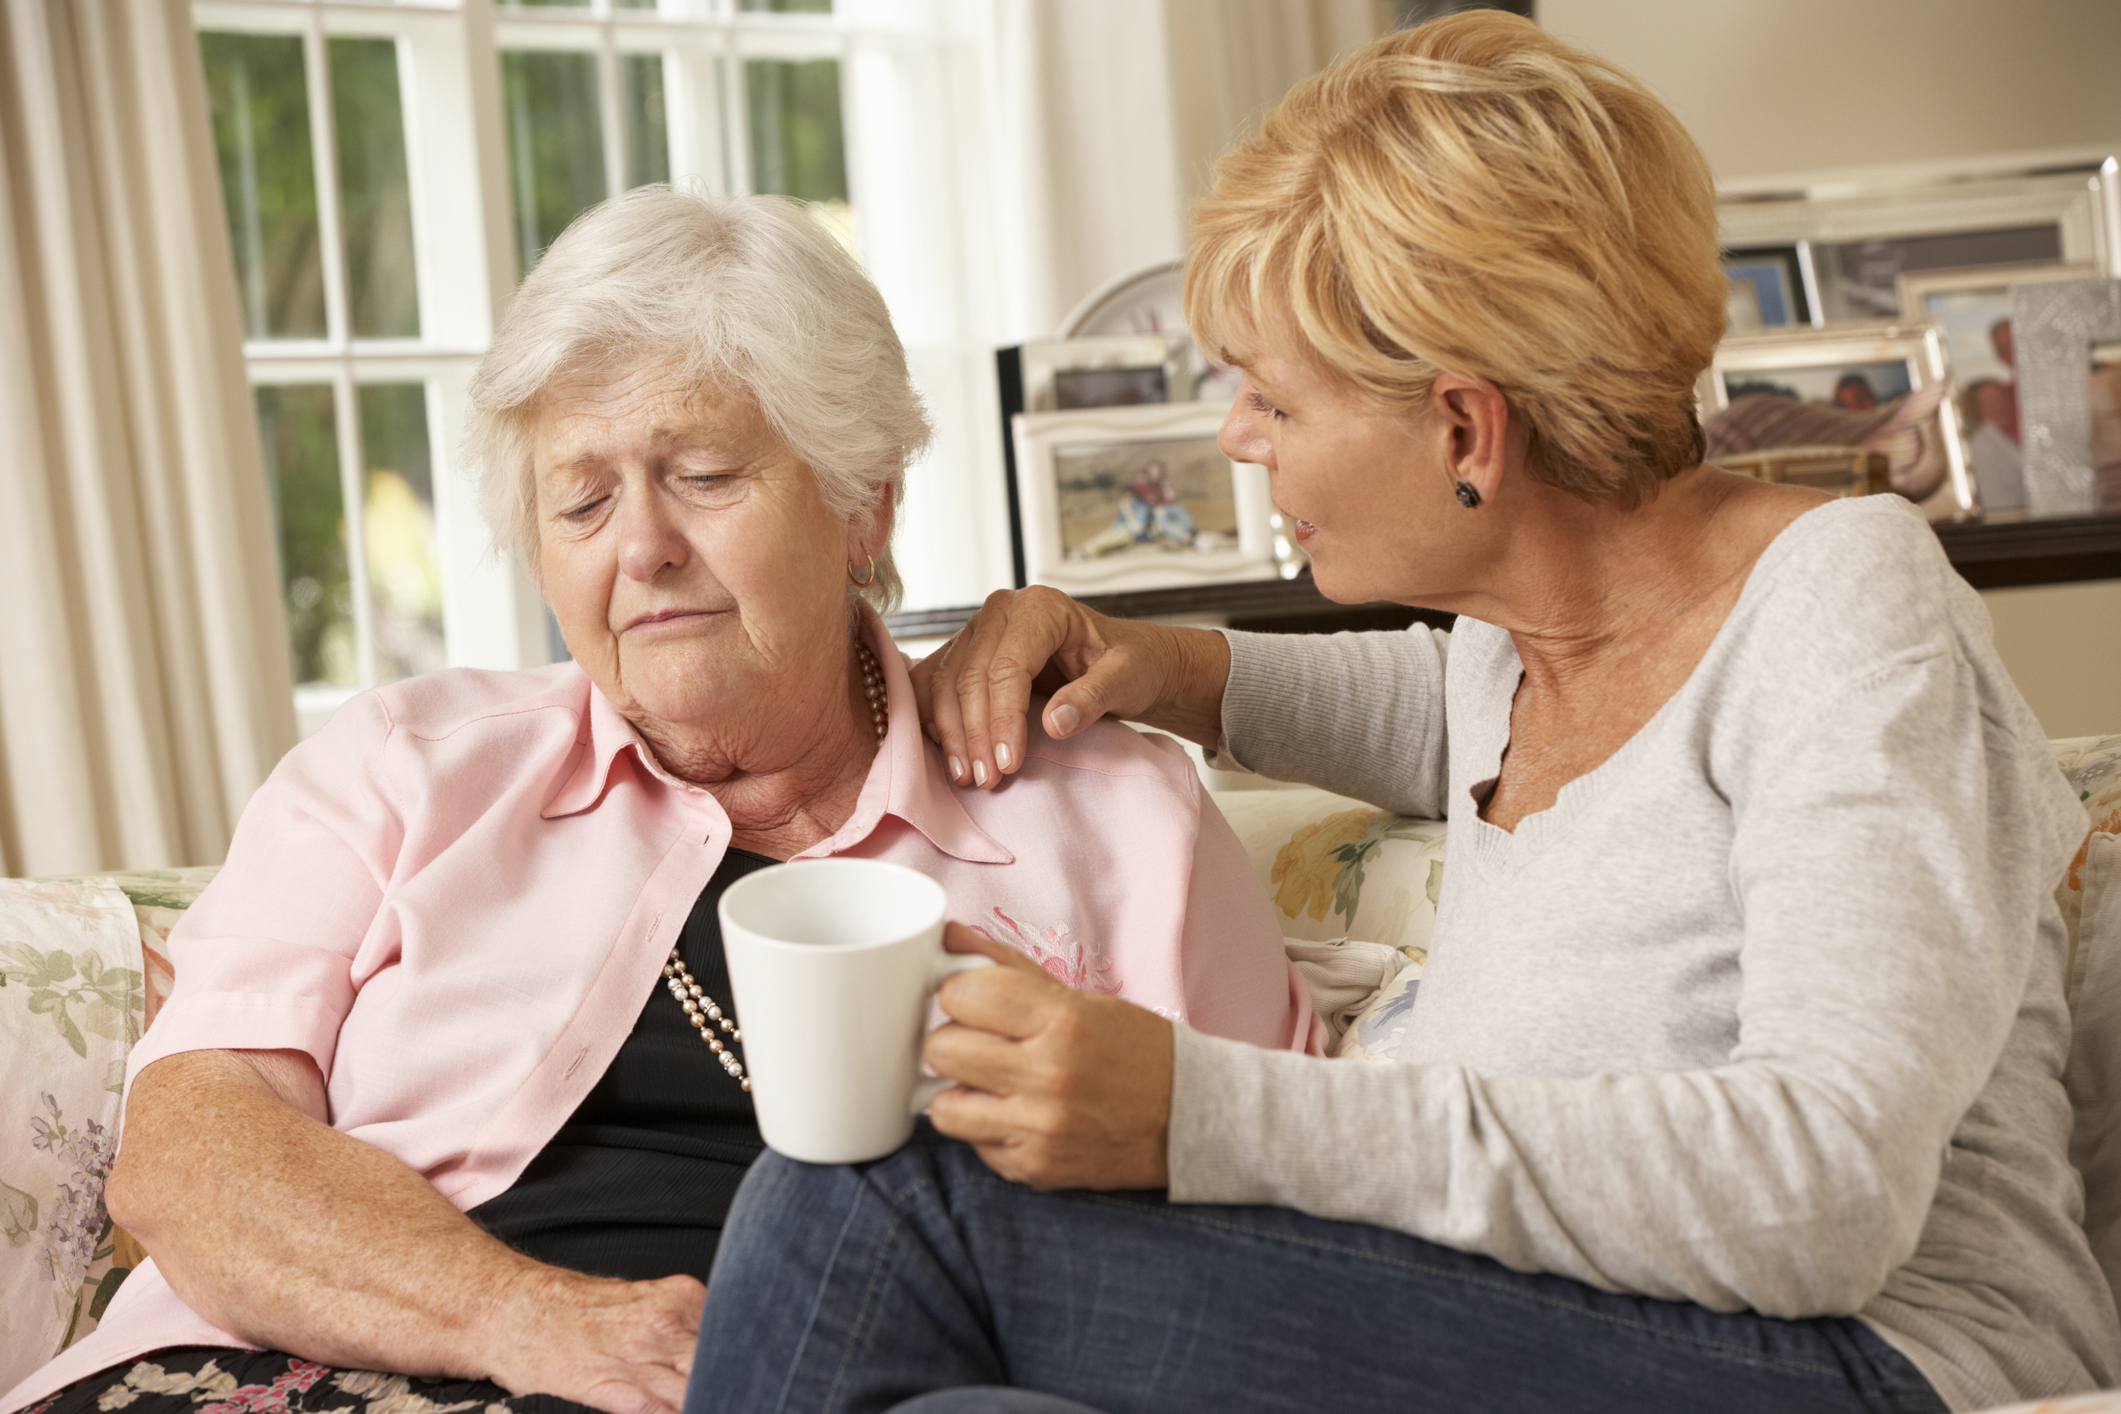 Unhappy elderly woman and her daughter chatting on sofa (Thinkstock/PA)